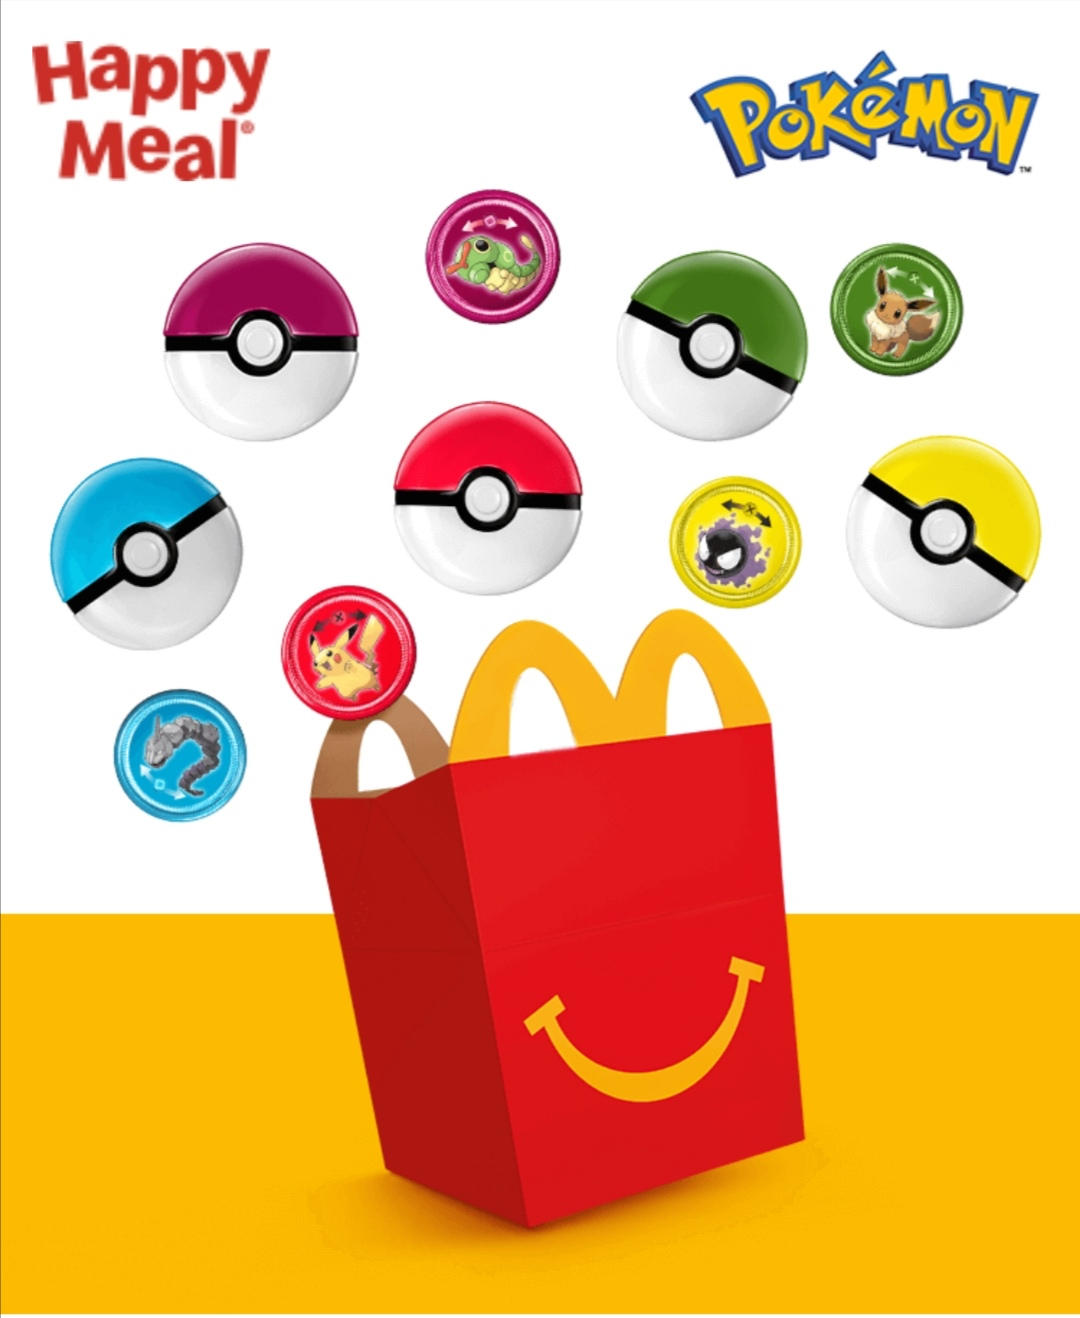 Happy Meal Pokémon 2020